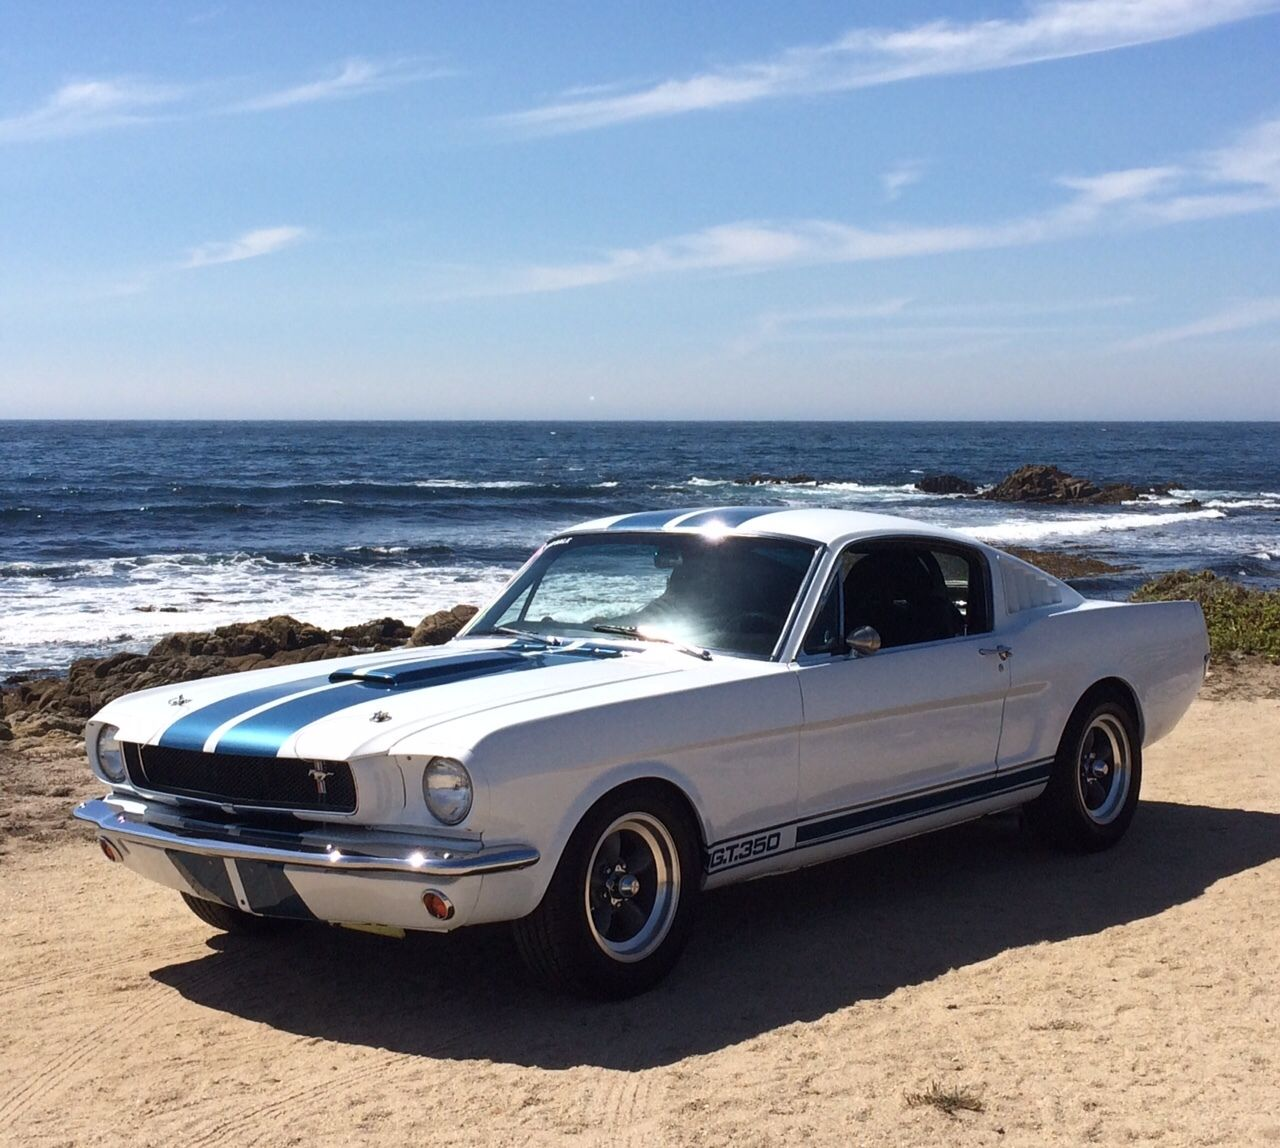 1965 Ford Mustang GT350 Tribute - Project Cars For Sale